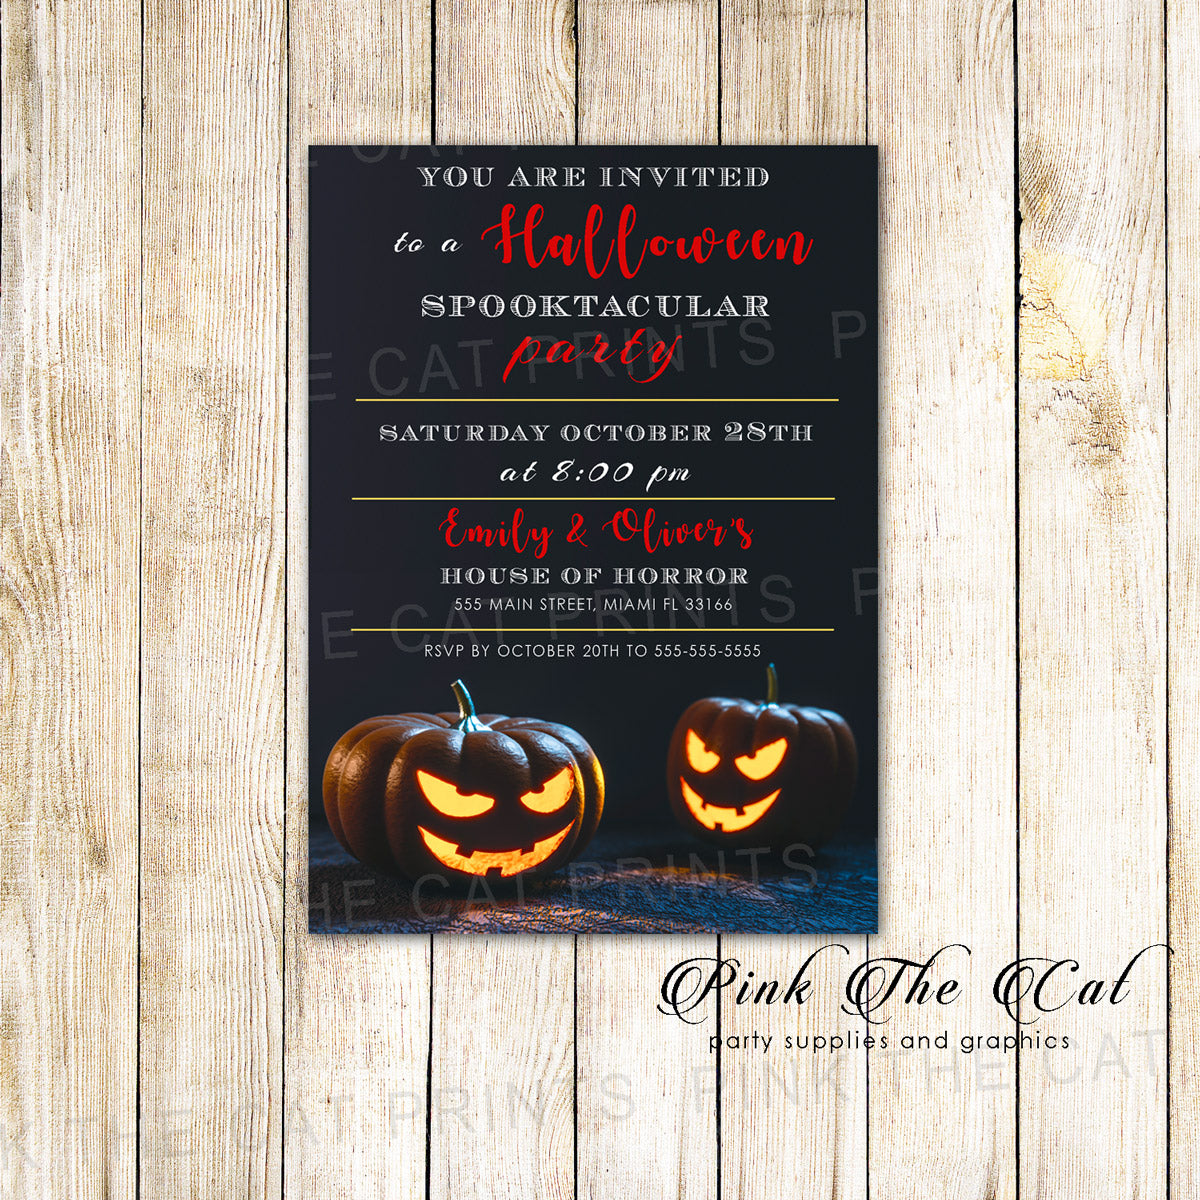 Halloween adult party invitation Printable – Pink The Cat